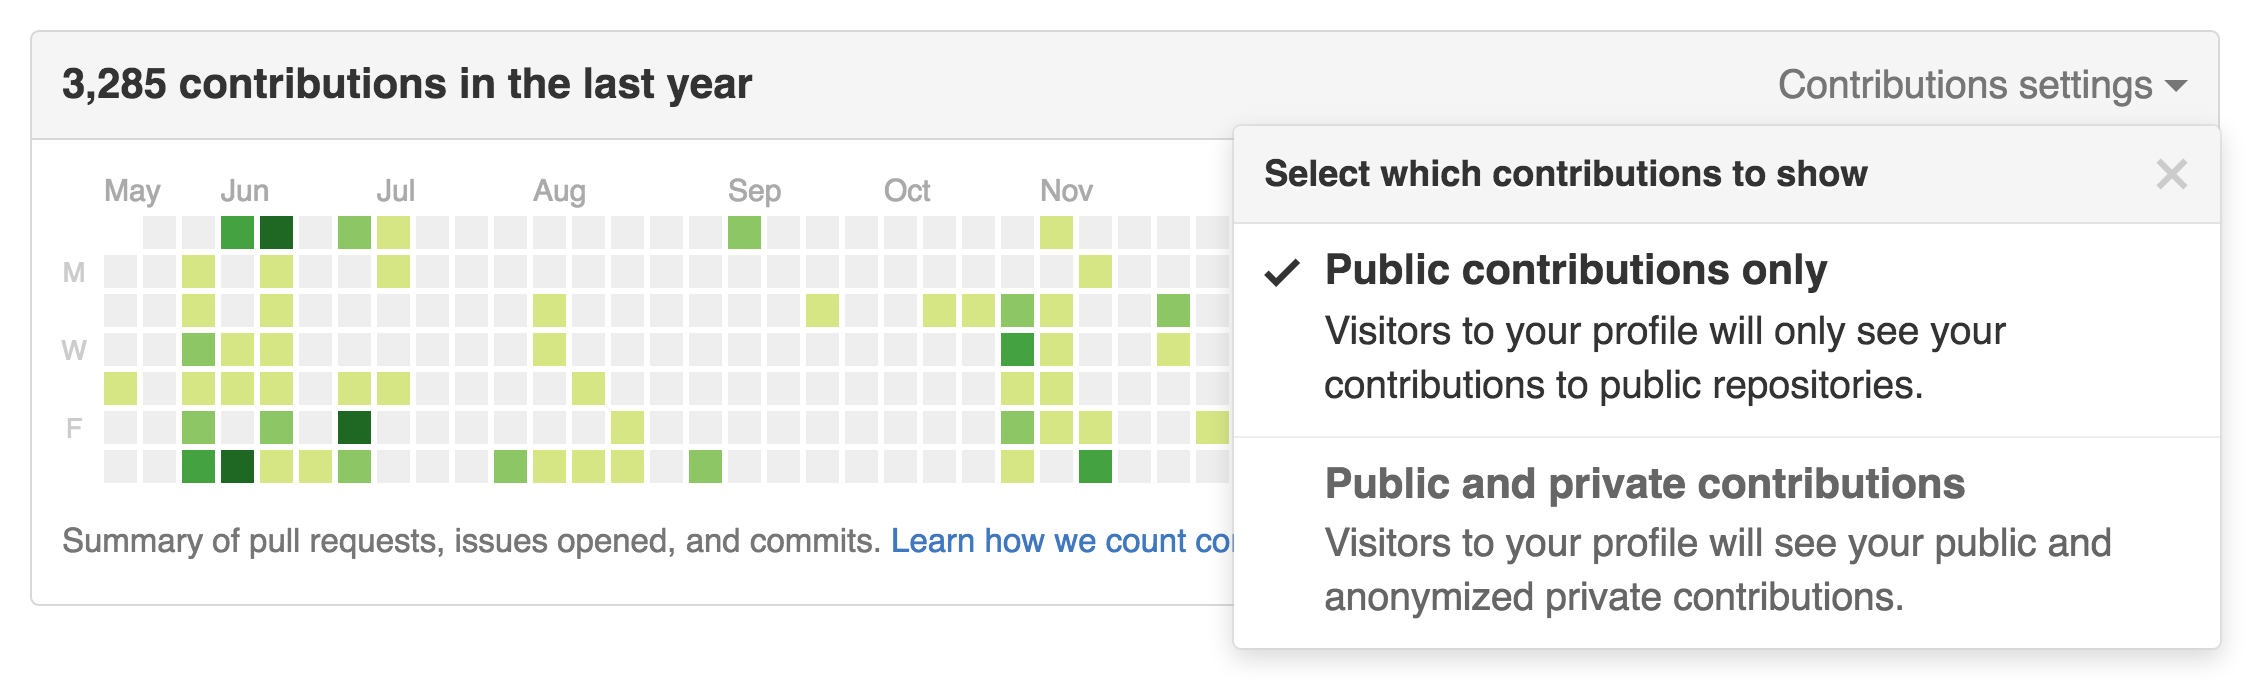 GitHub contribution graph settings